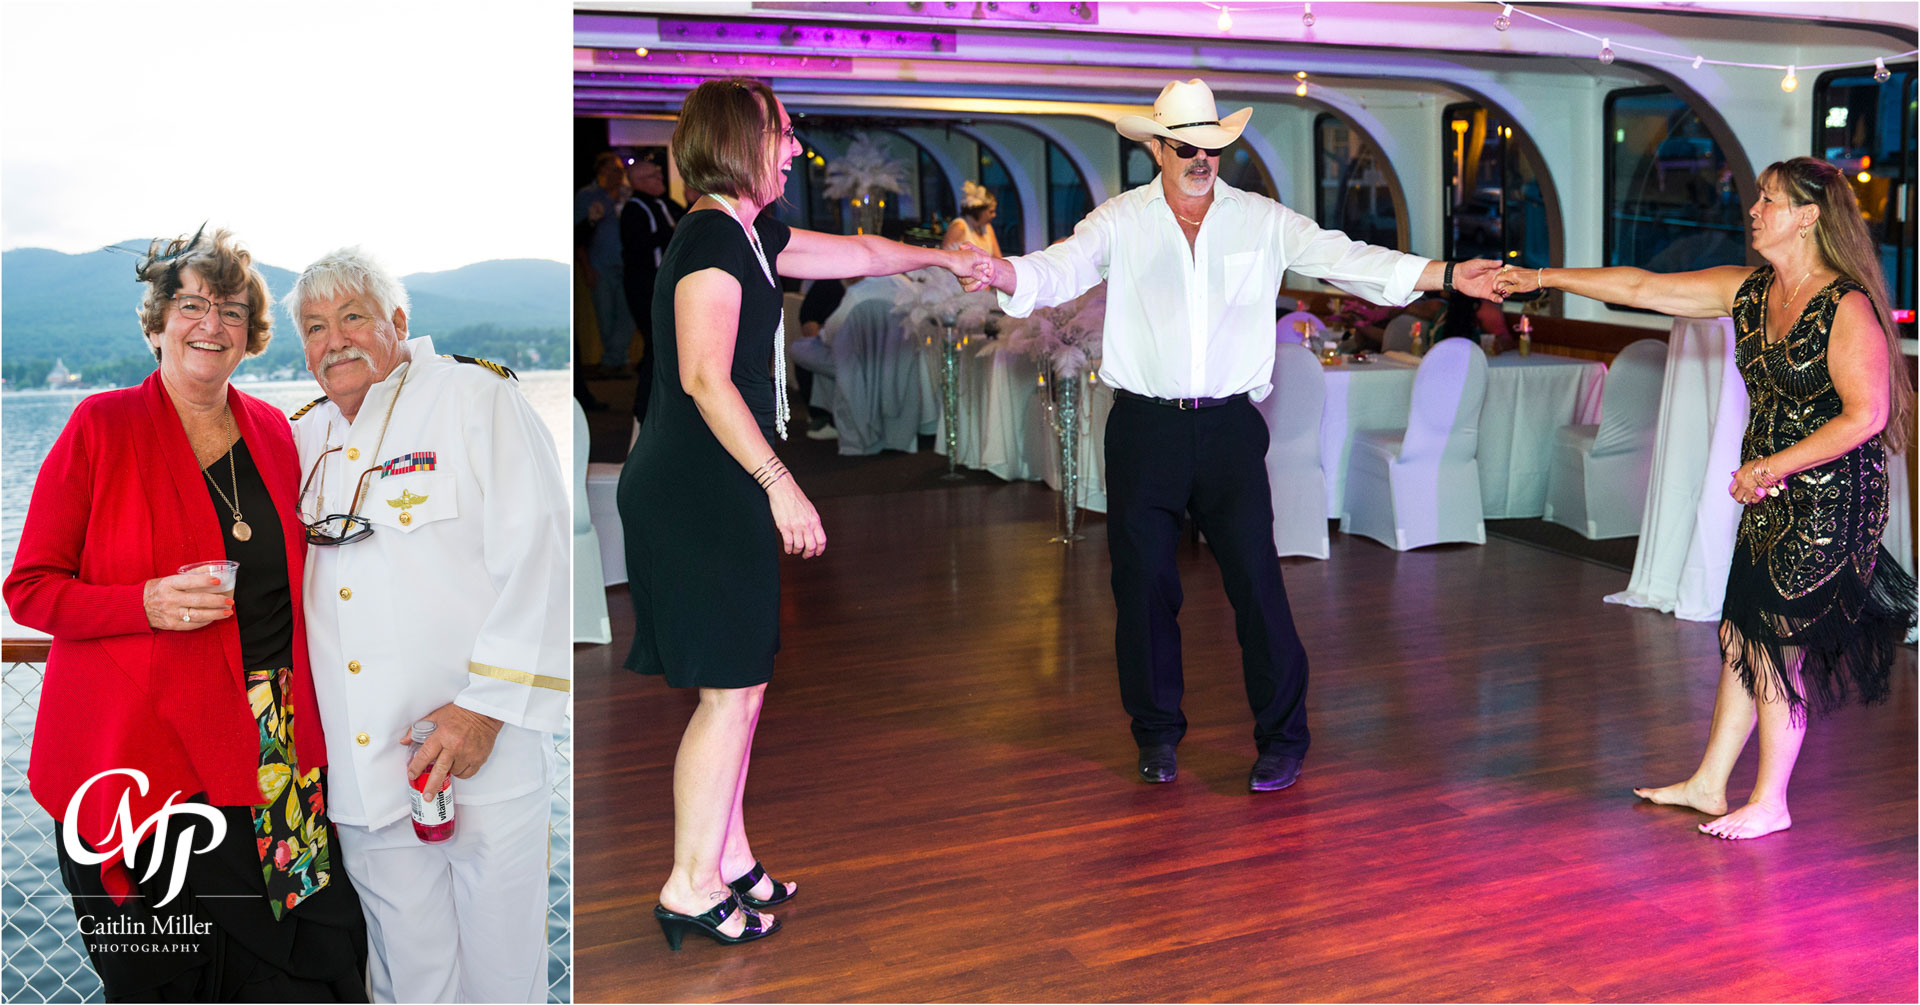 bombard-33.jpg from Jan and Robert's vow renewal on shoreline Cruise's Adirondac Boat on Lake George, NY by Saratoga Wedding Photographer Caitlin Miller Photography. Lake George Wedding Photographer. Stamford wedding photographer. Albany wedding photographer. Shoreline Cruises Wedding Photographer. Saratoga Wedding Photographer